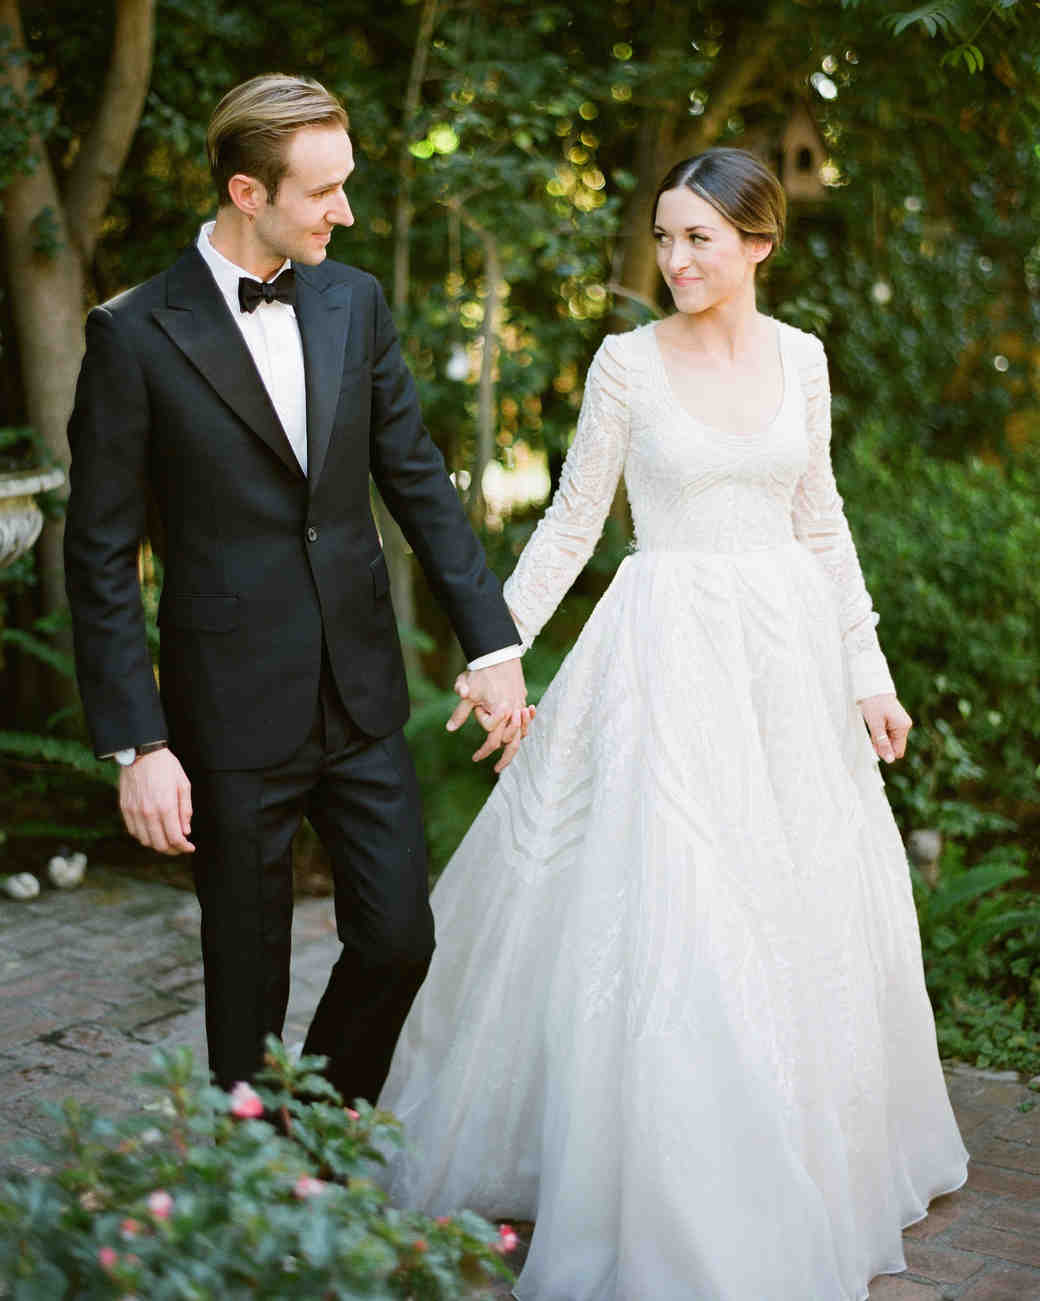 A Backyard Garden Wedding In San Marino